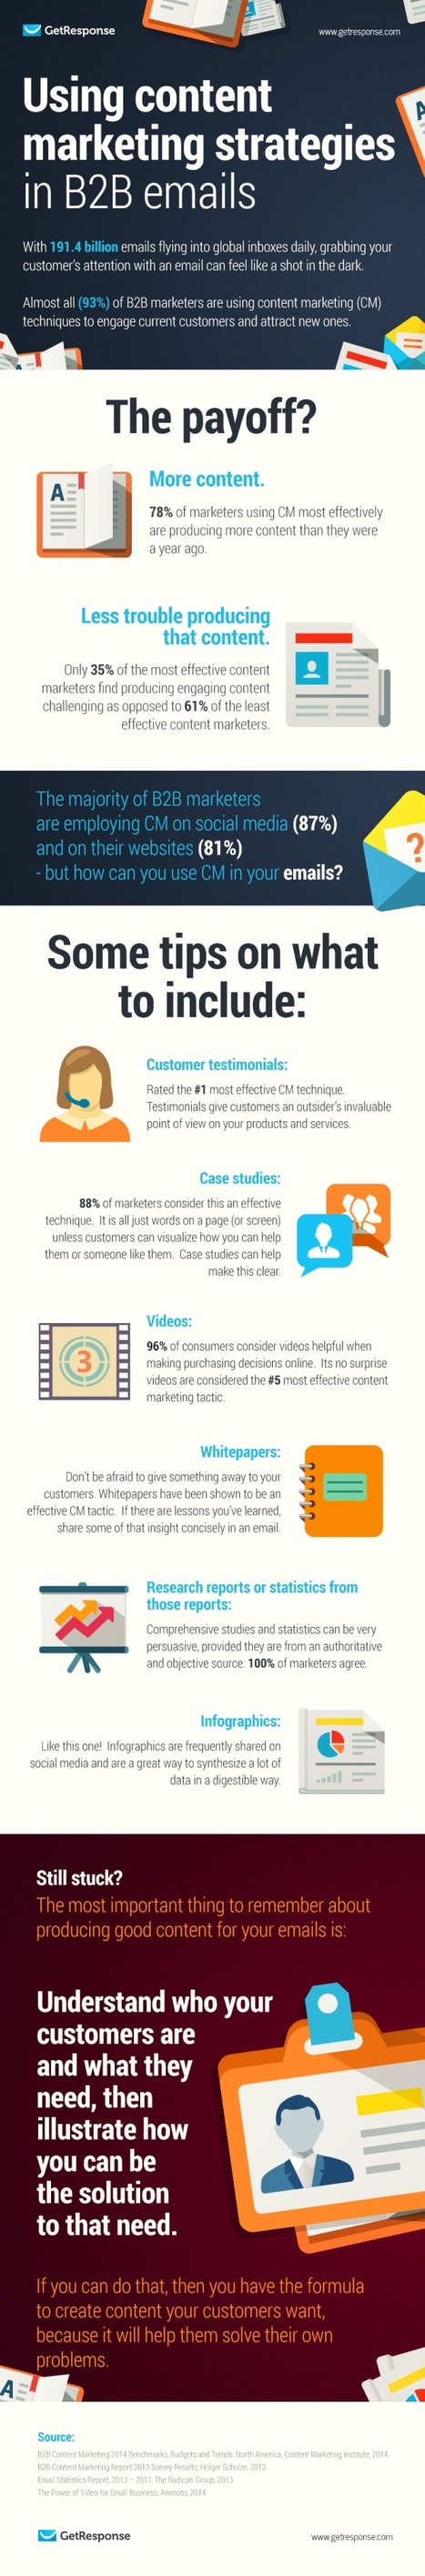 Using Content Marketing Strategies in B2B Emails #Infographic | AANVE! |Website Designing Company in Delhi-India,SEO Services Company Delhi | Scoop.it